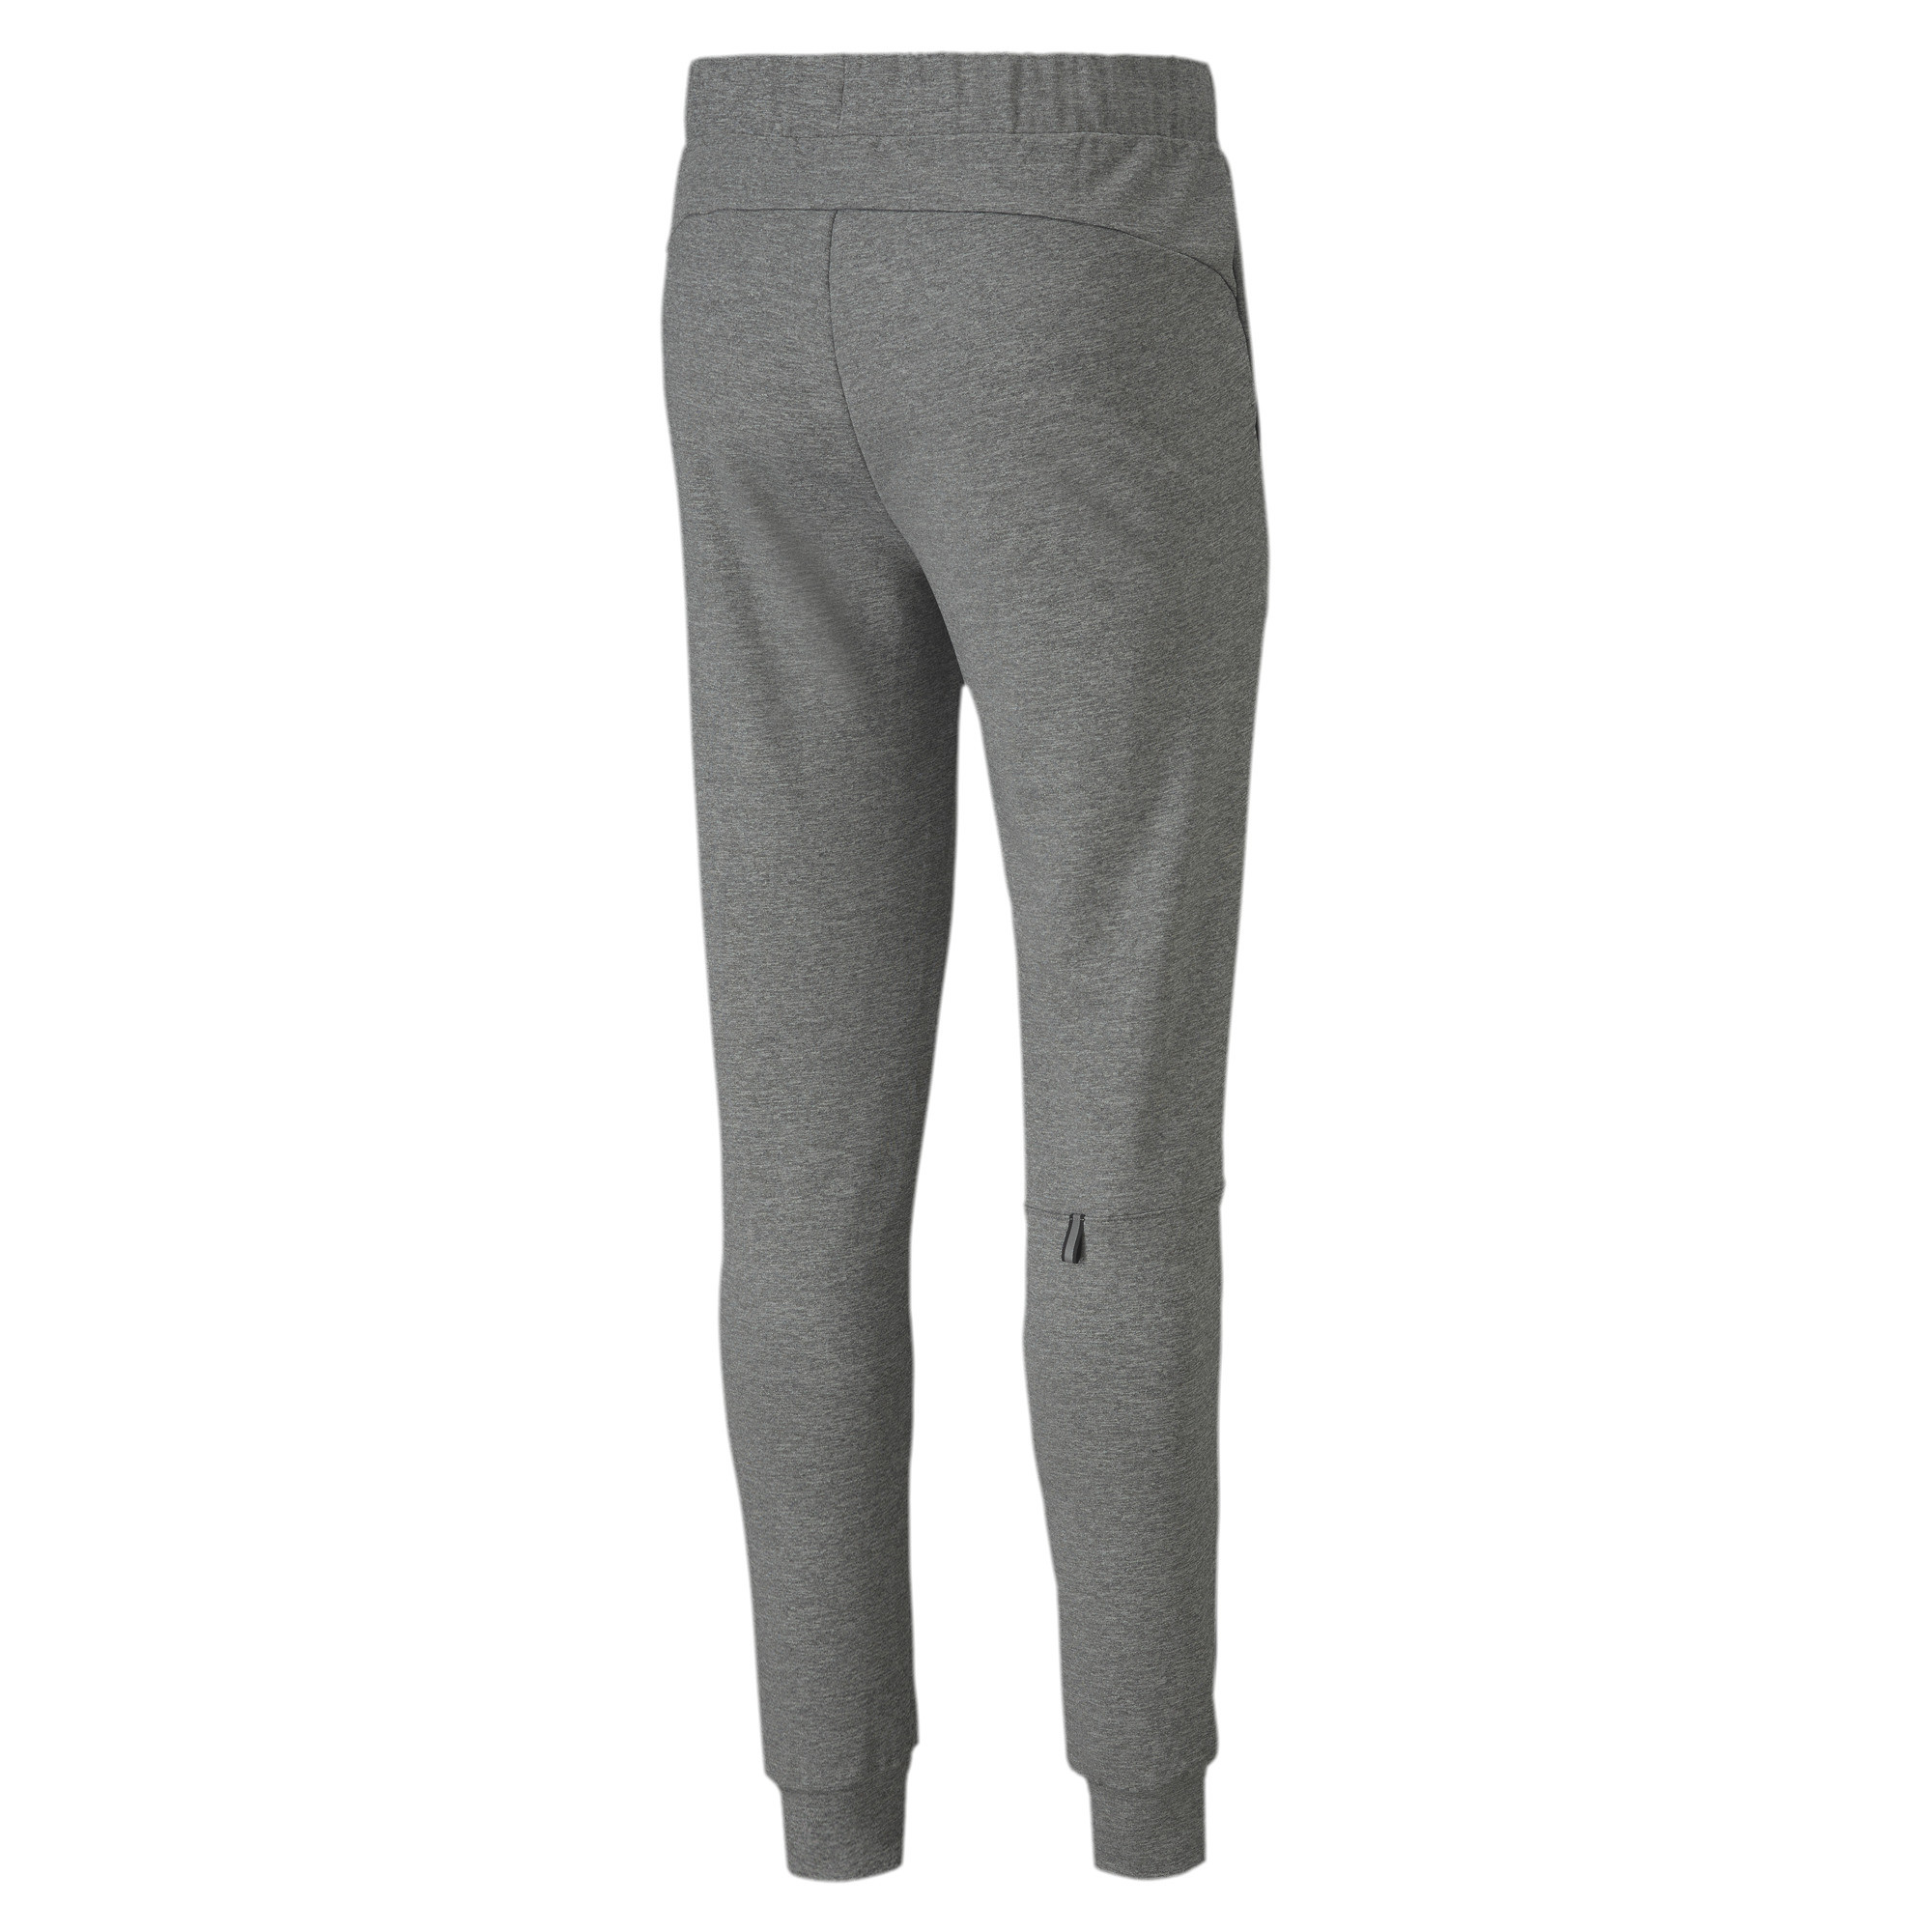 PUMA-RTG-Men-039-s-Knitted-Pants-Men-Knitted-Pants-Basics thumbnail 8